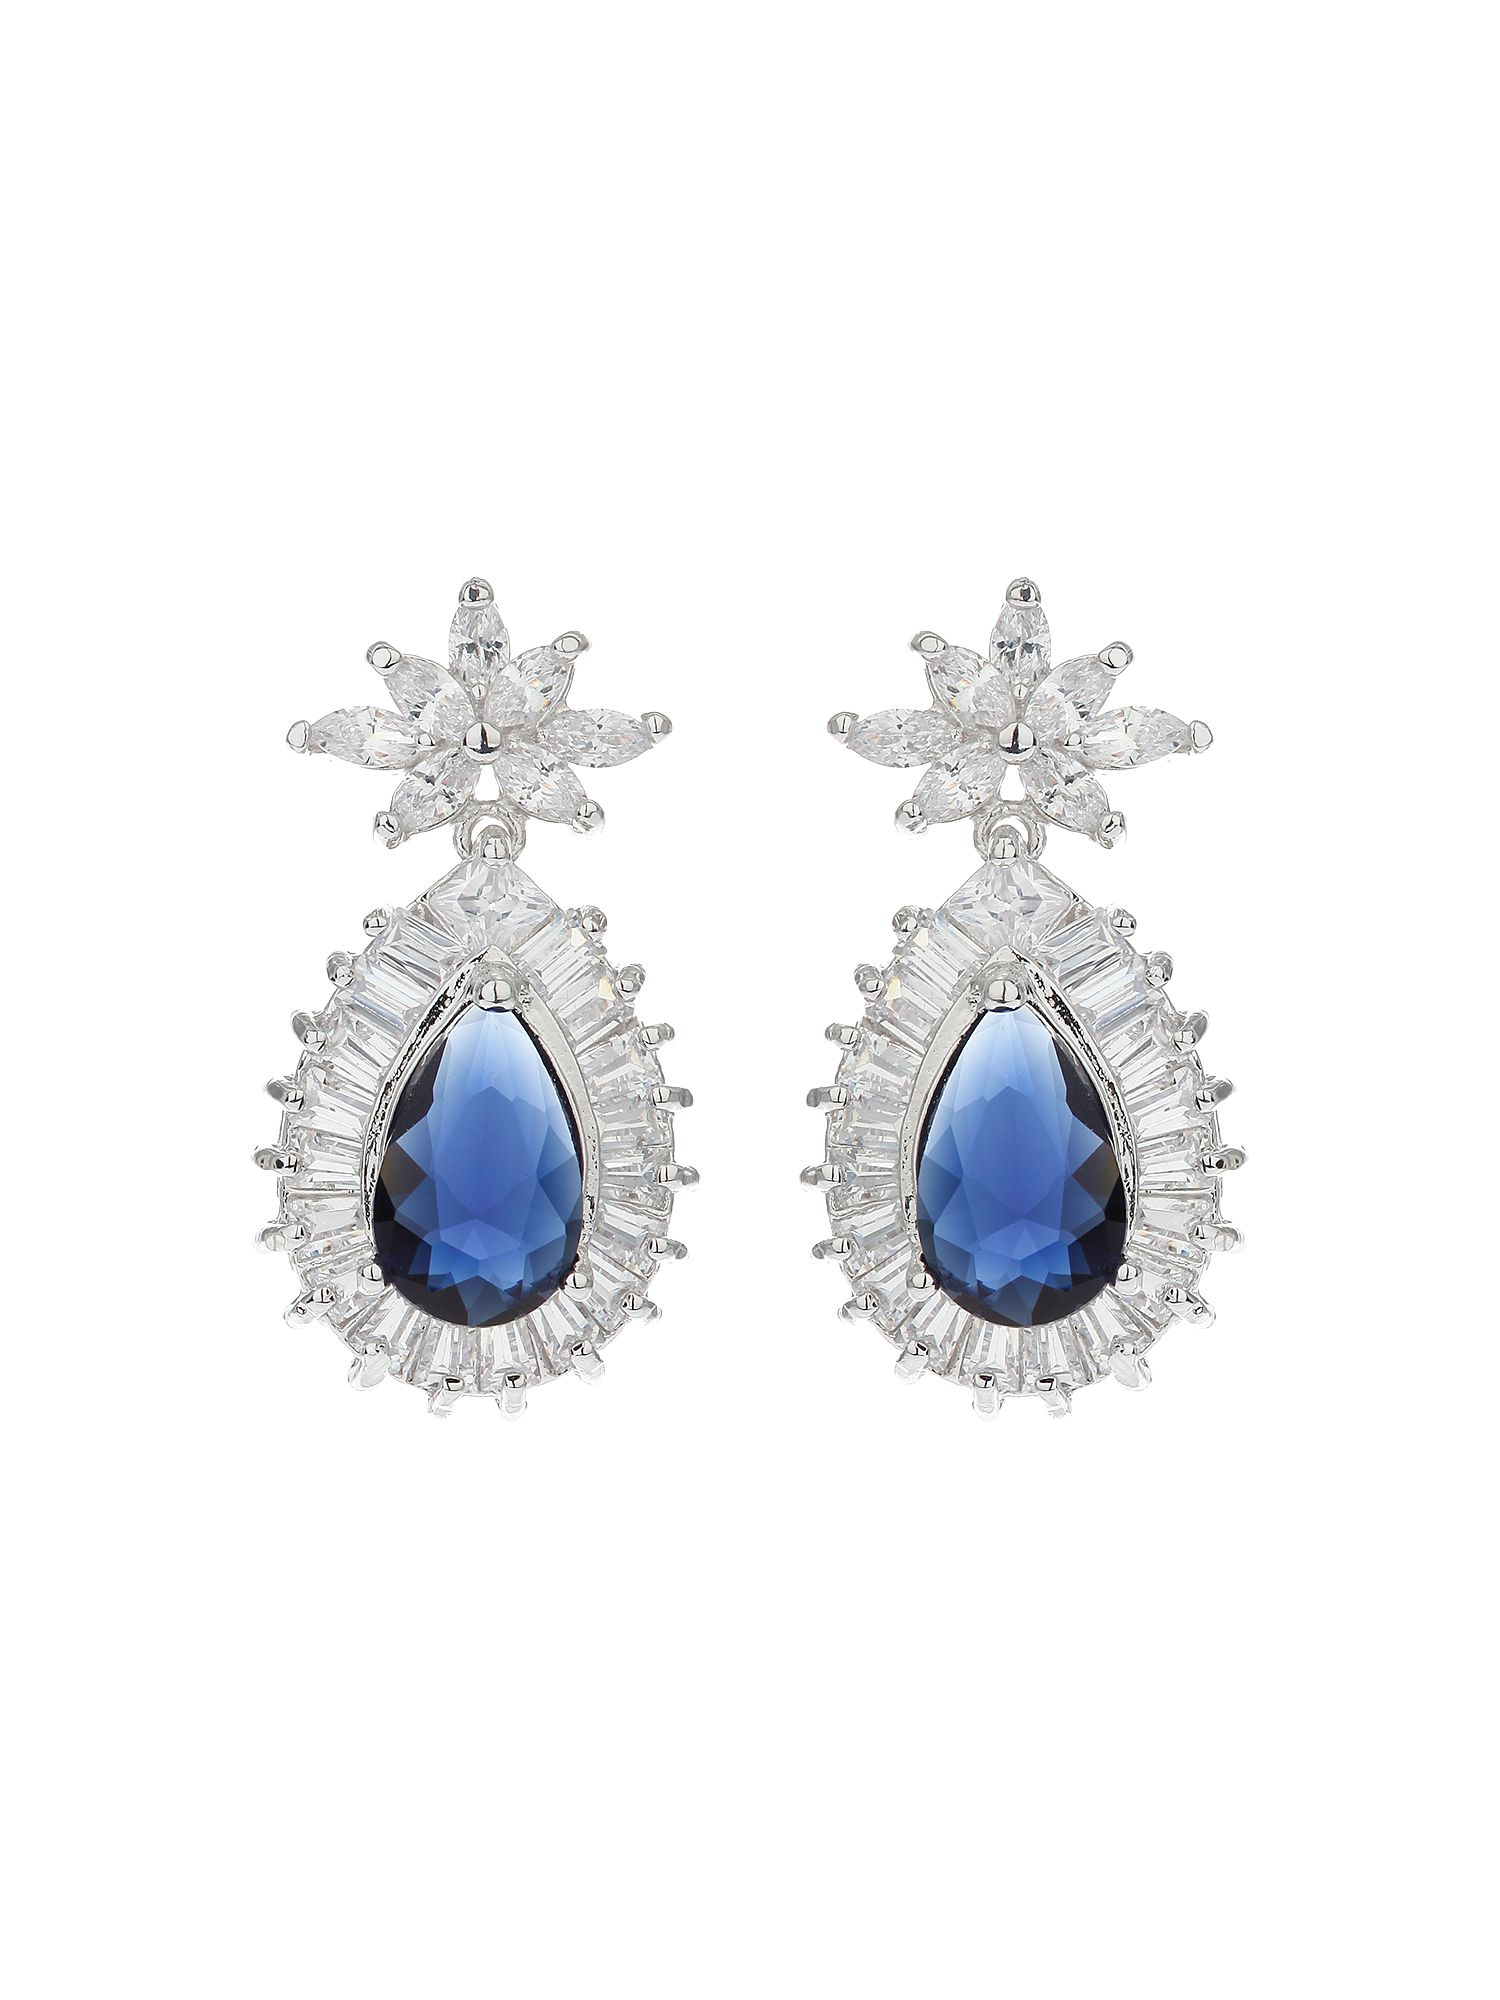 Mikey Baguette Surround Oval Centre Earring, N/A